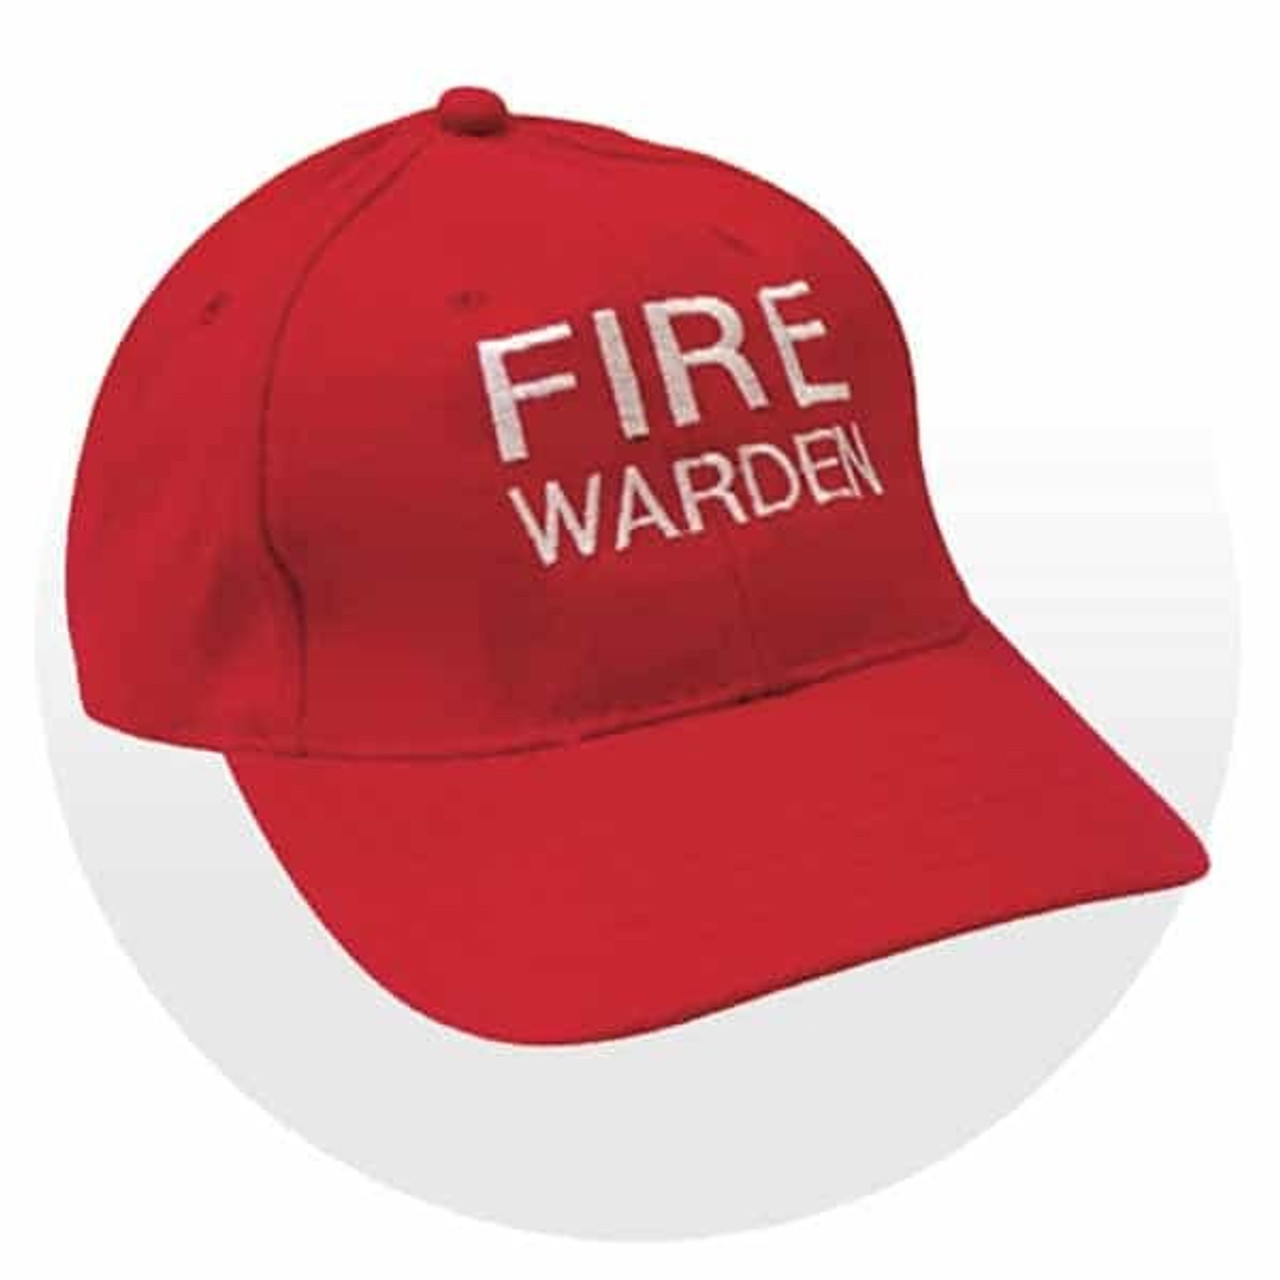 Hats for Fire Wardens & Other Emergency Staff